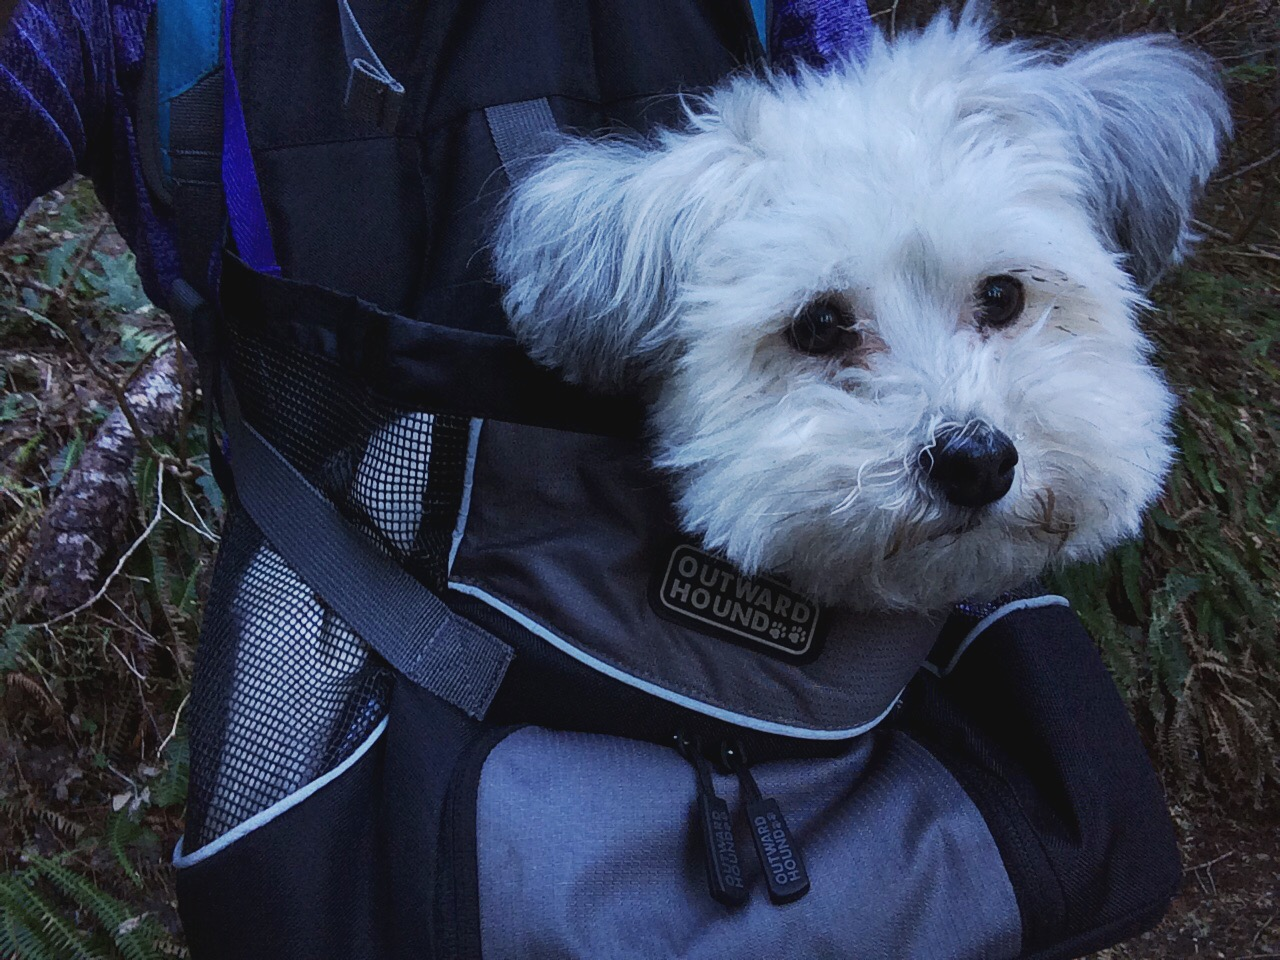 This is how little dogs hike